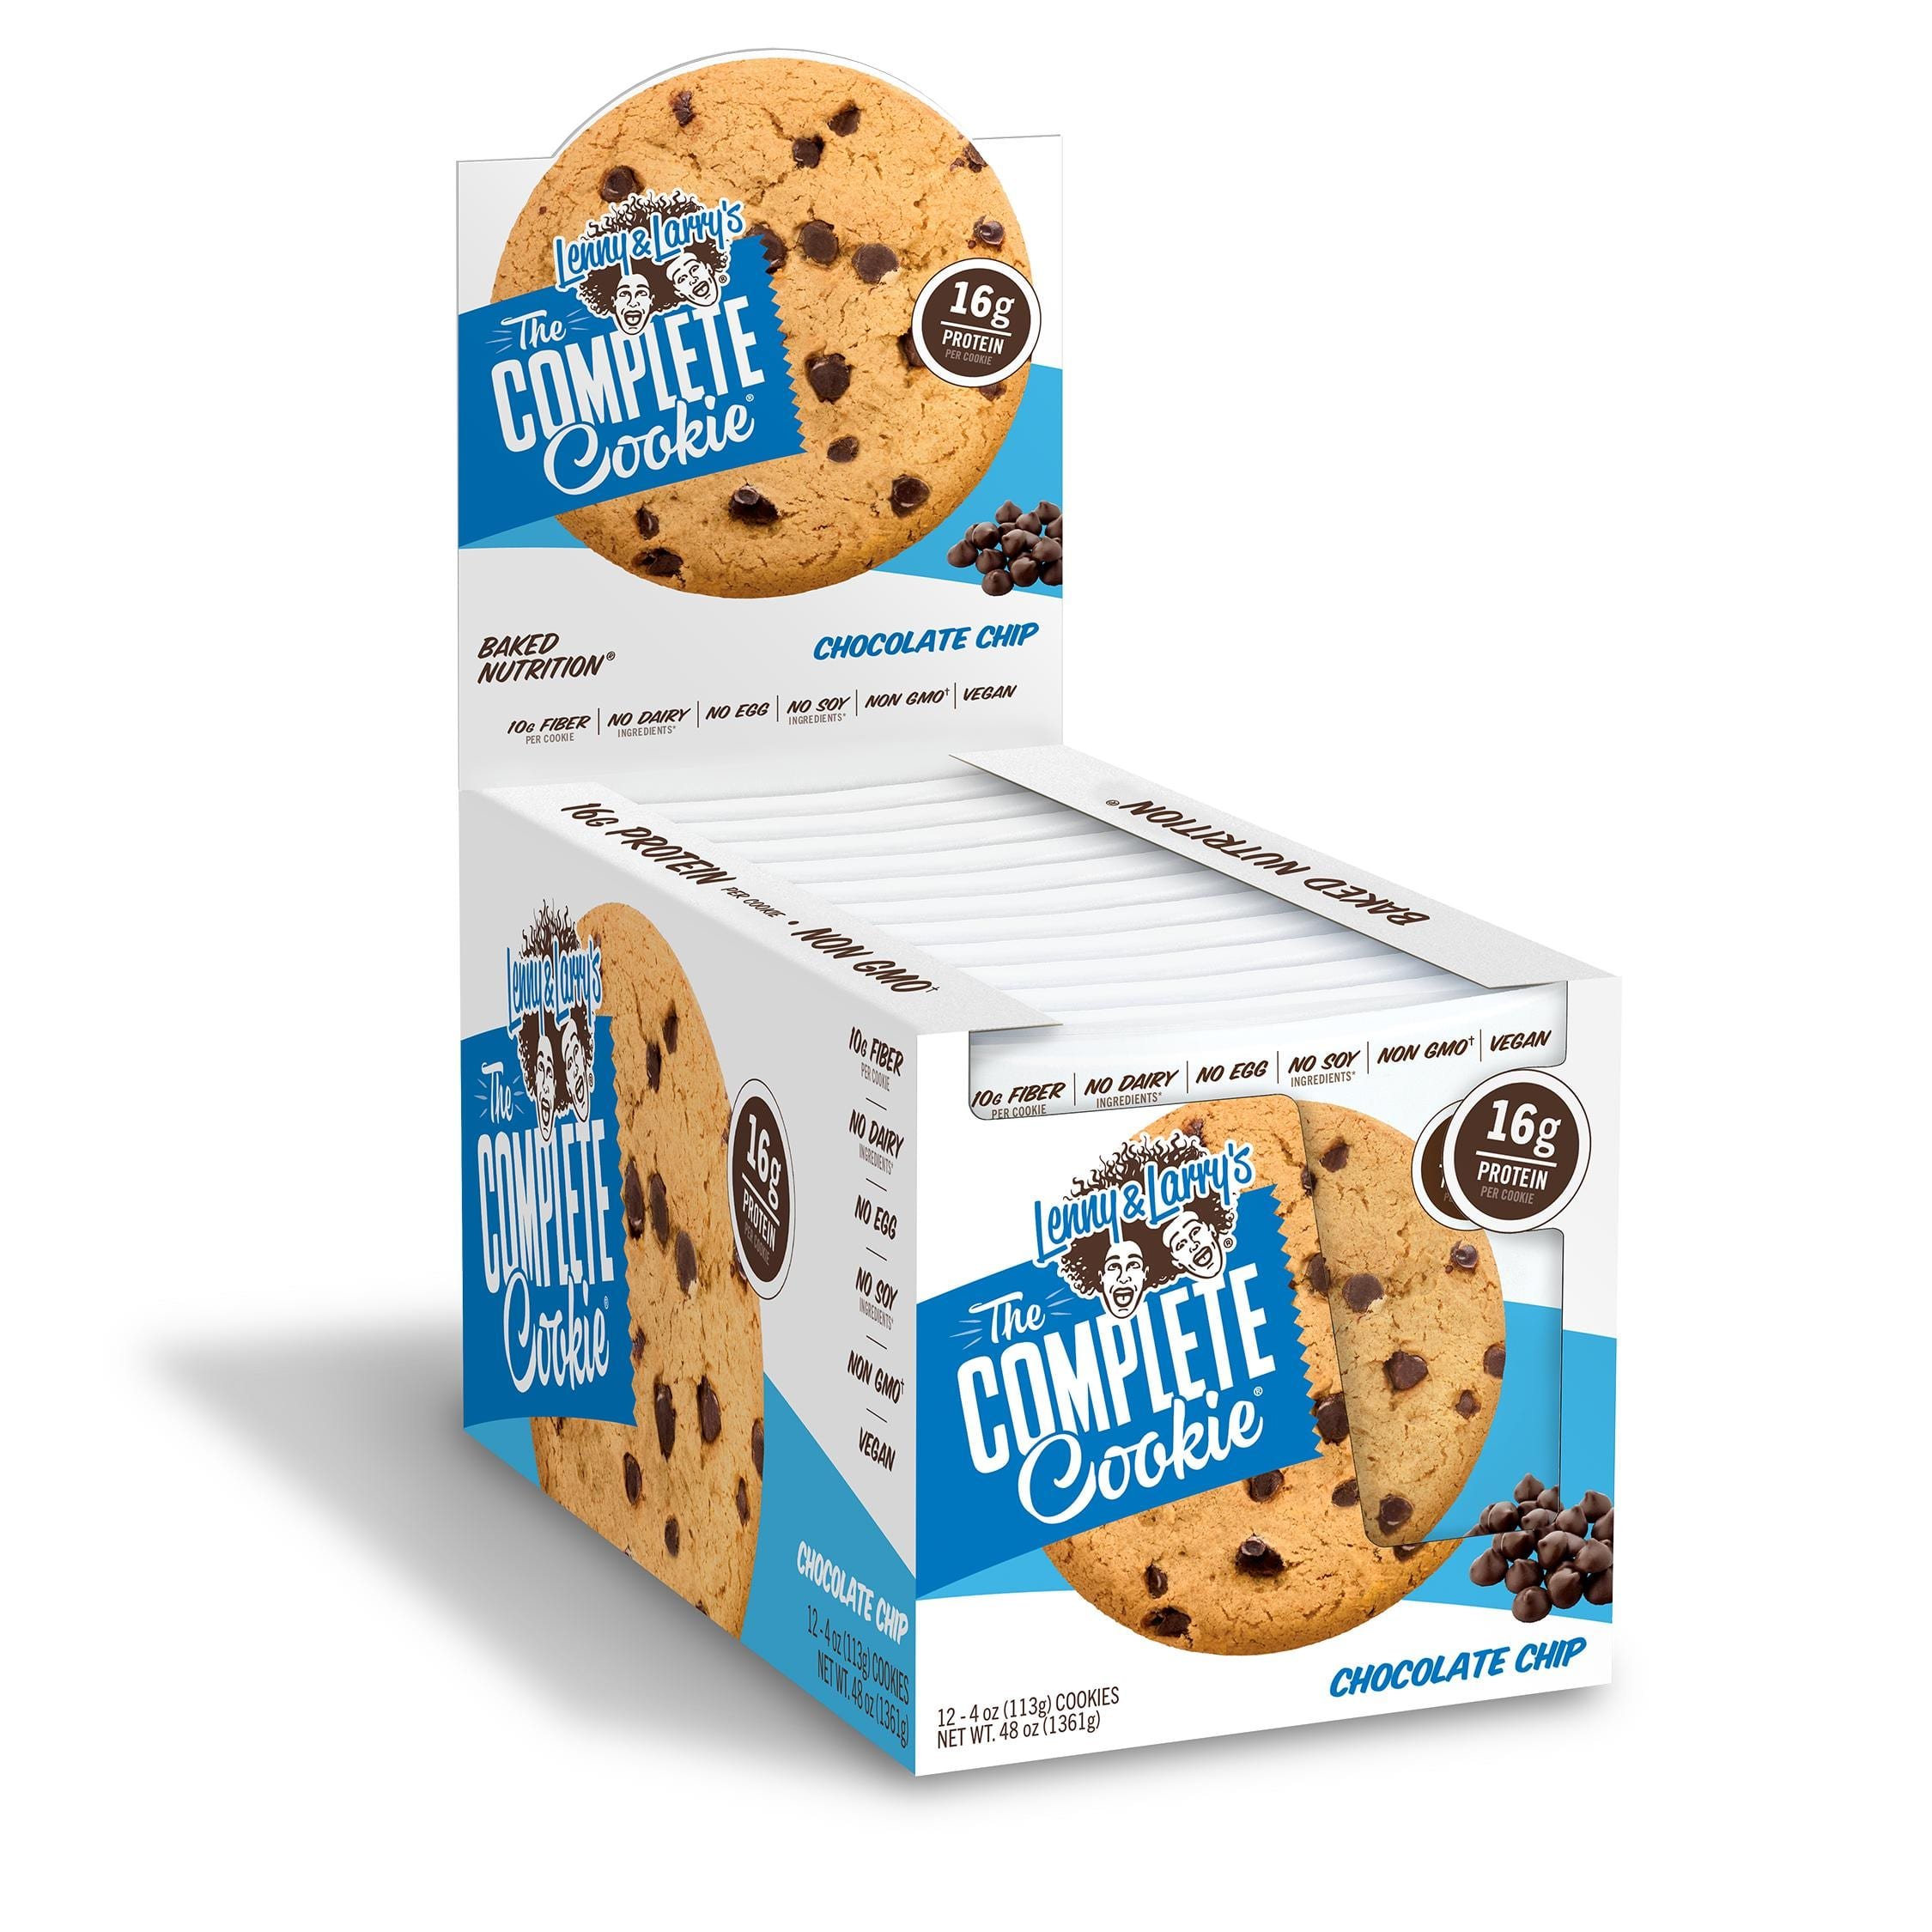 Lenny and Larry's The Complete Cookie 4oz 24 cookies for $1.20 each/48 cookies 97cents each- Vitamin Shoppe